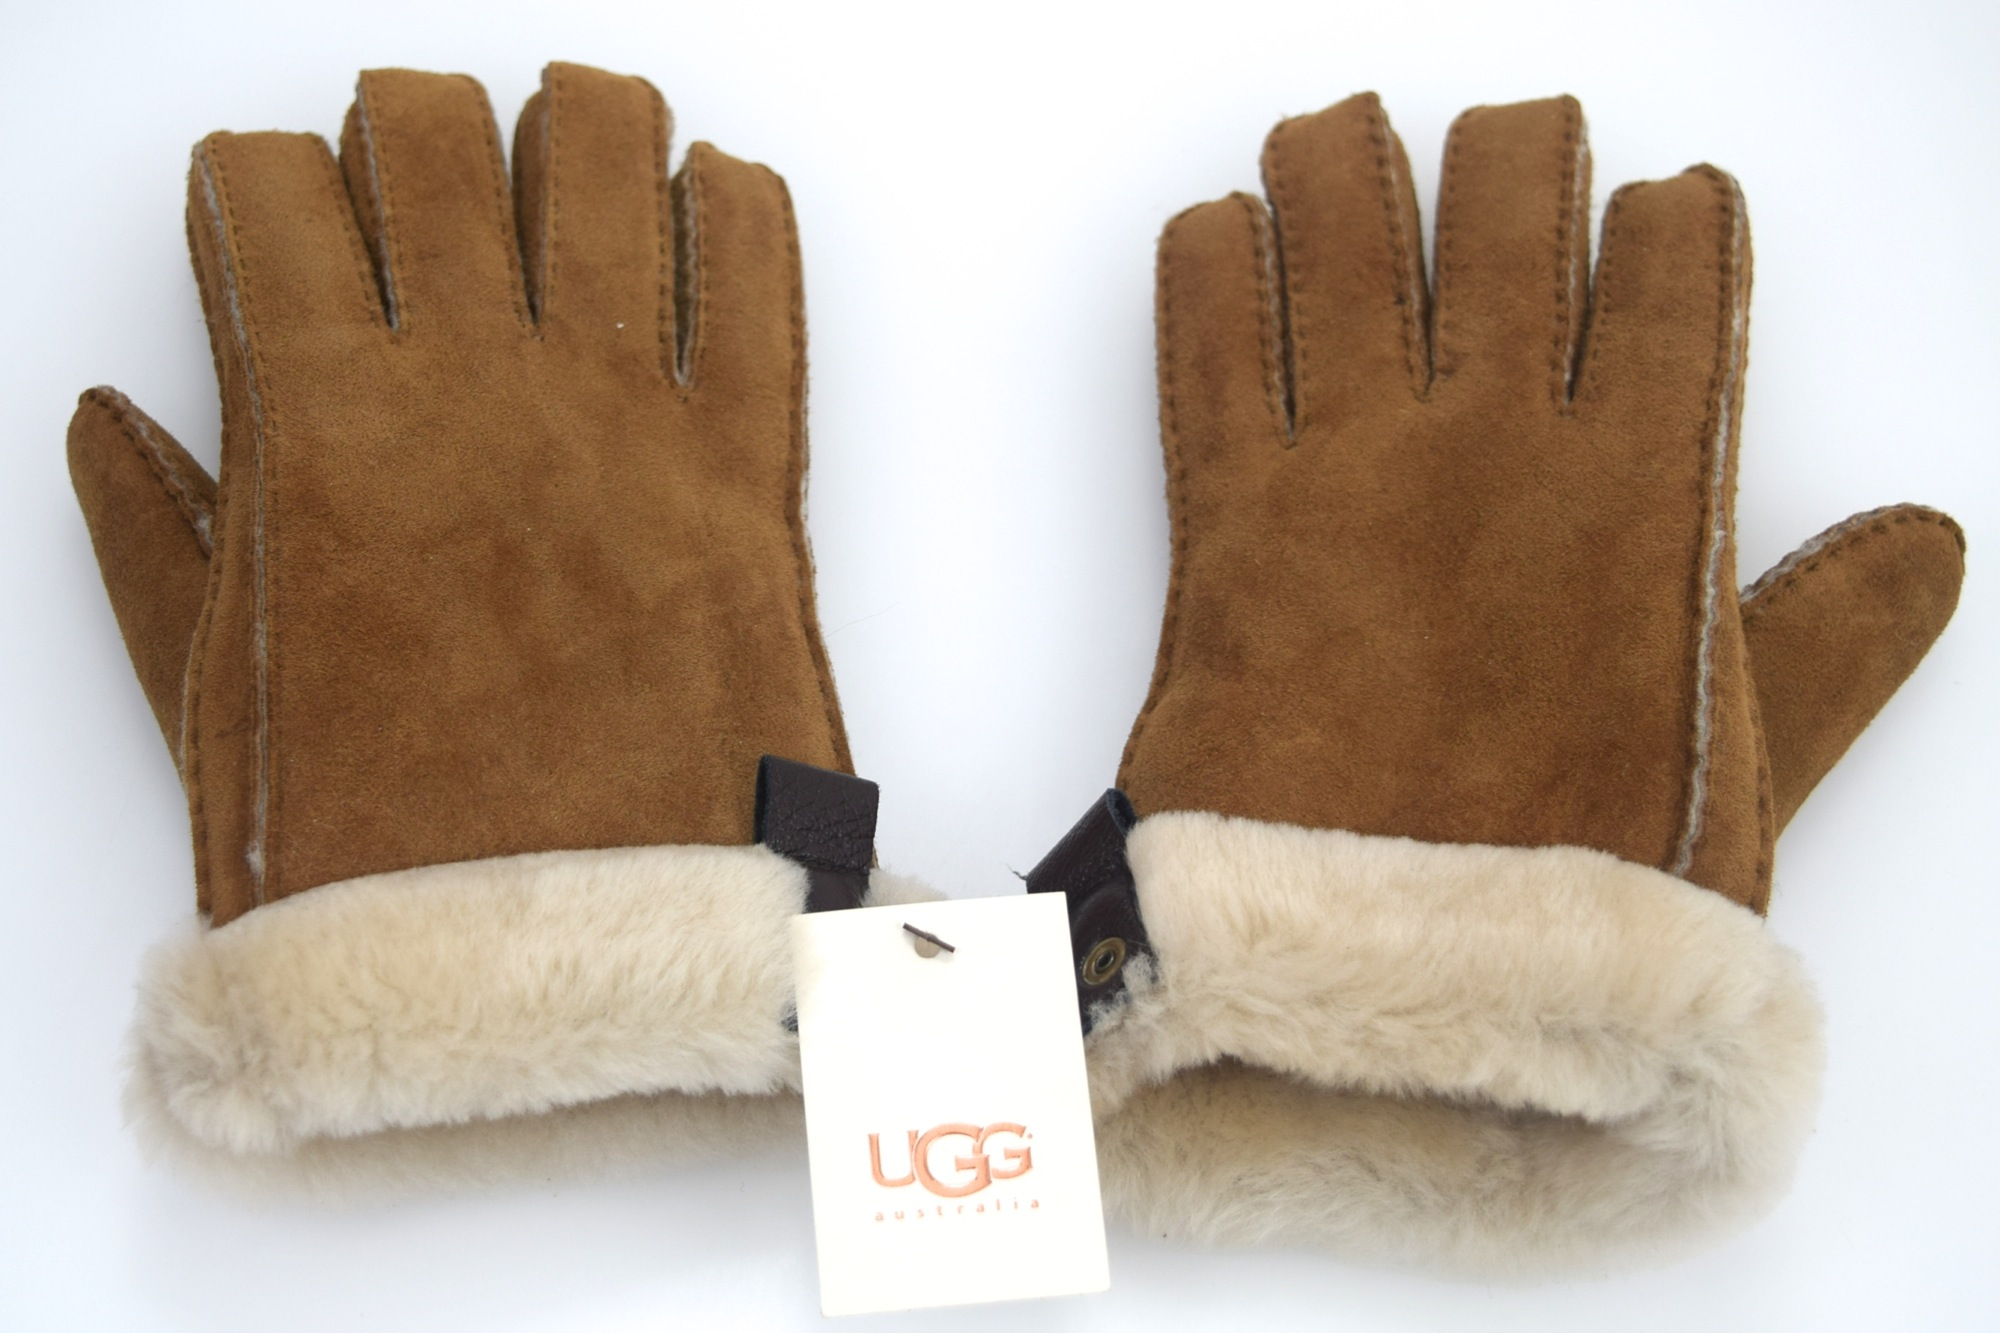 ugg factory outlet adelaide